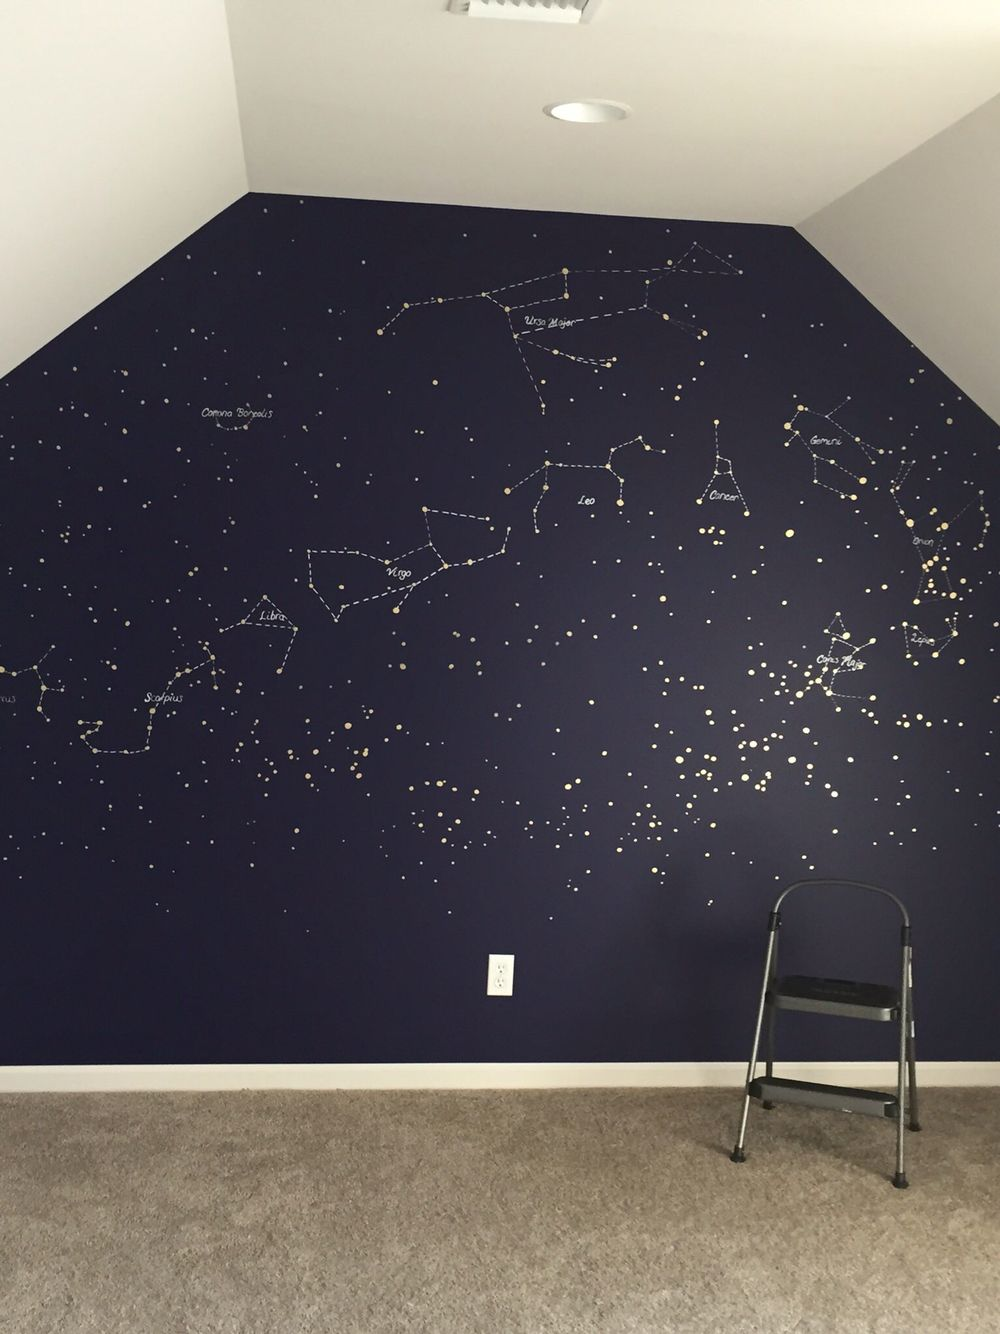 Constellation map mural painted with gold and silver paint pens in a deep blue wall